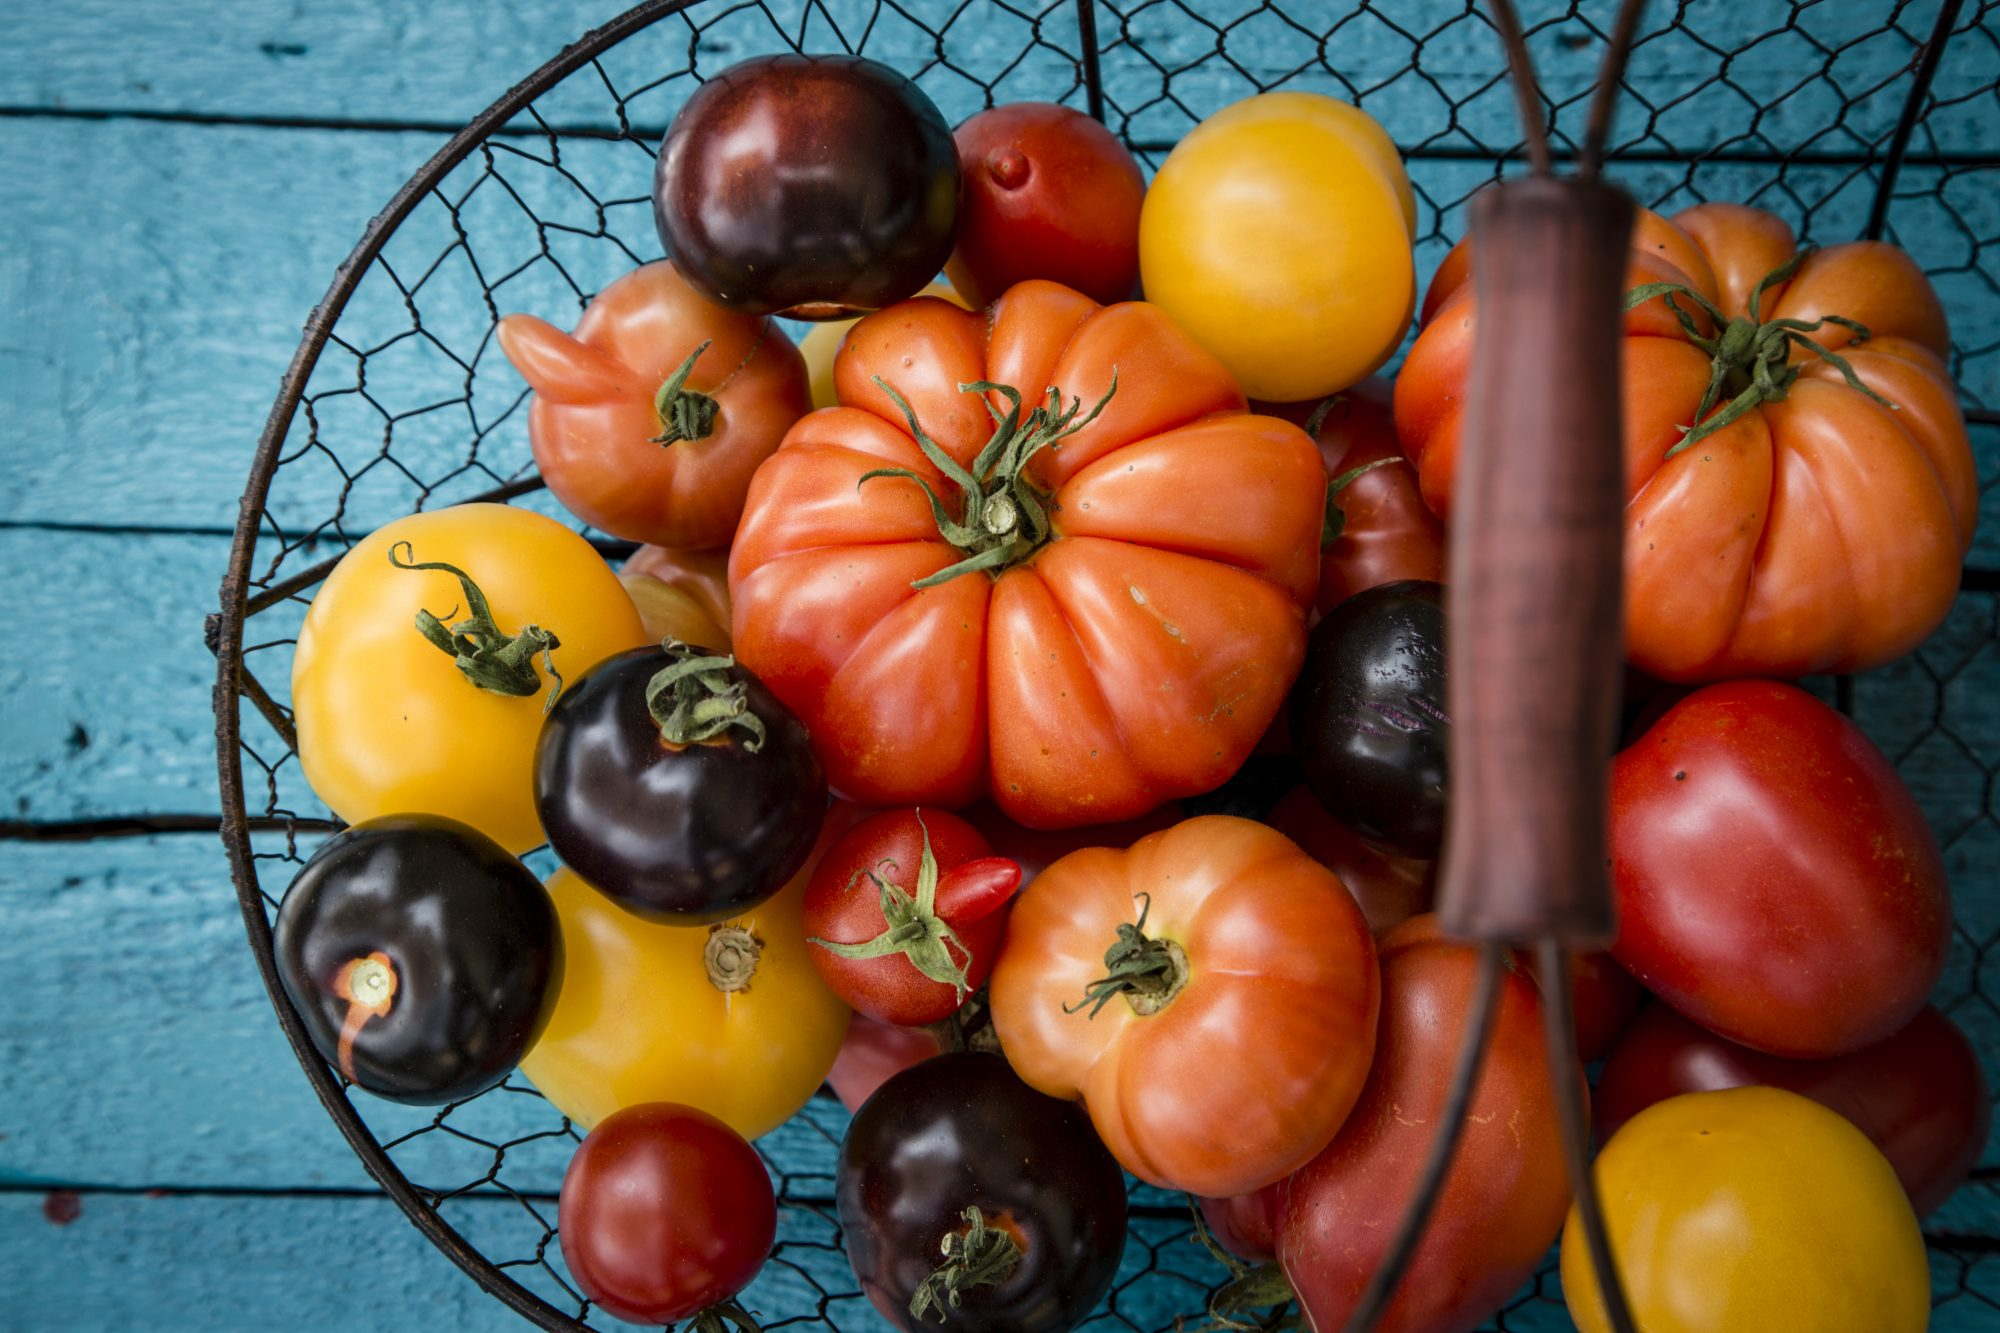 getty-summer-tomatoes-image